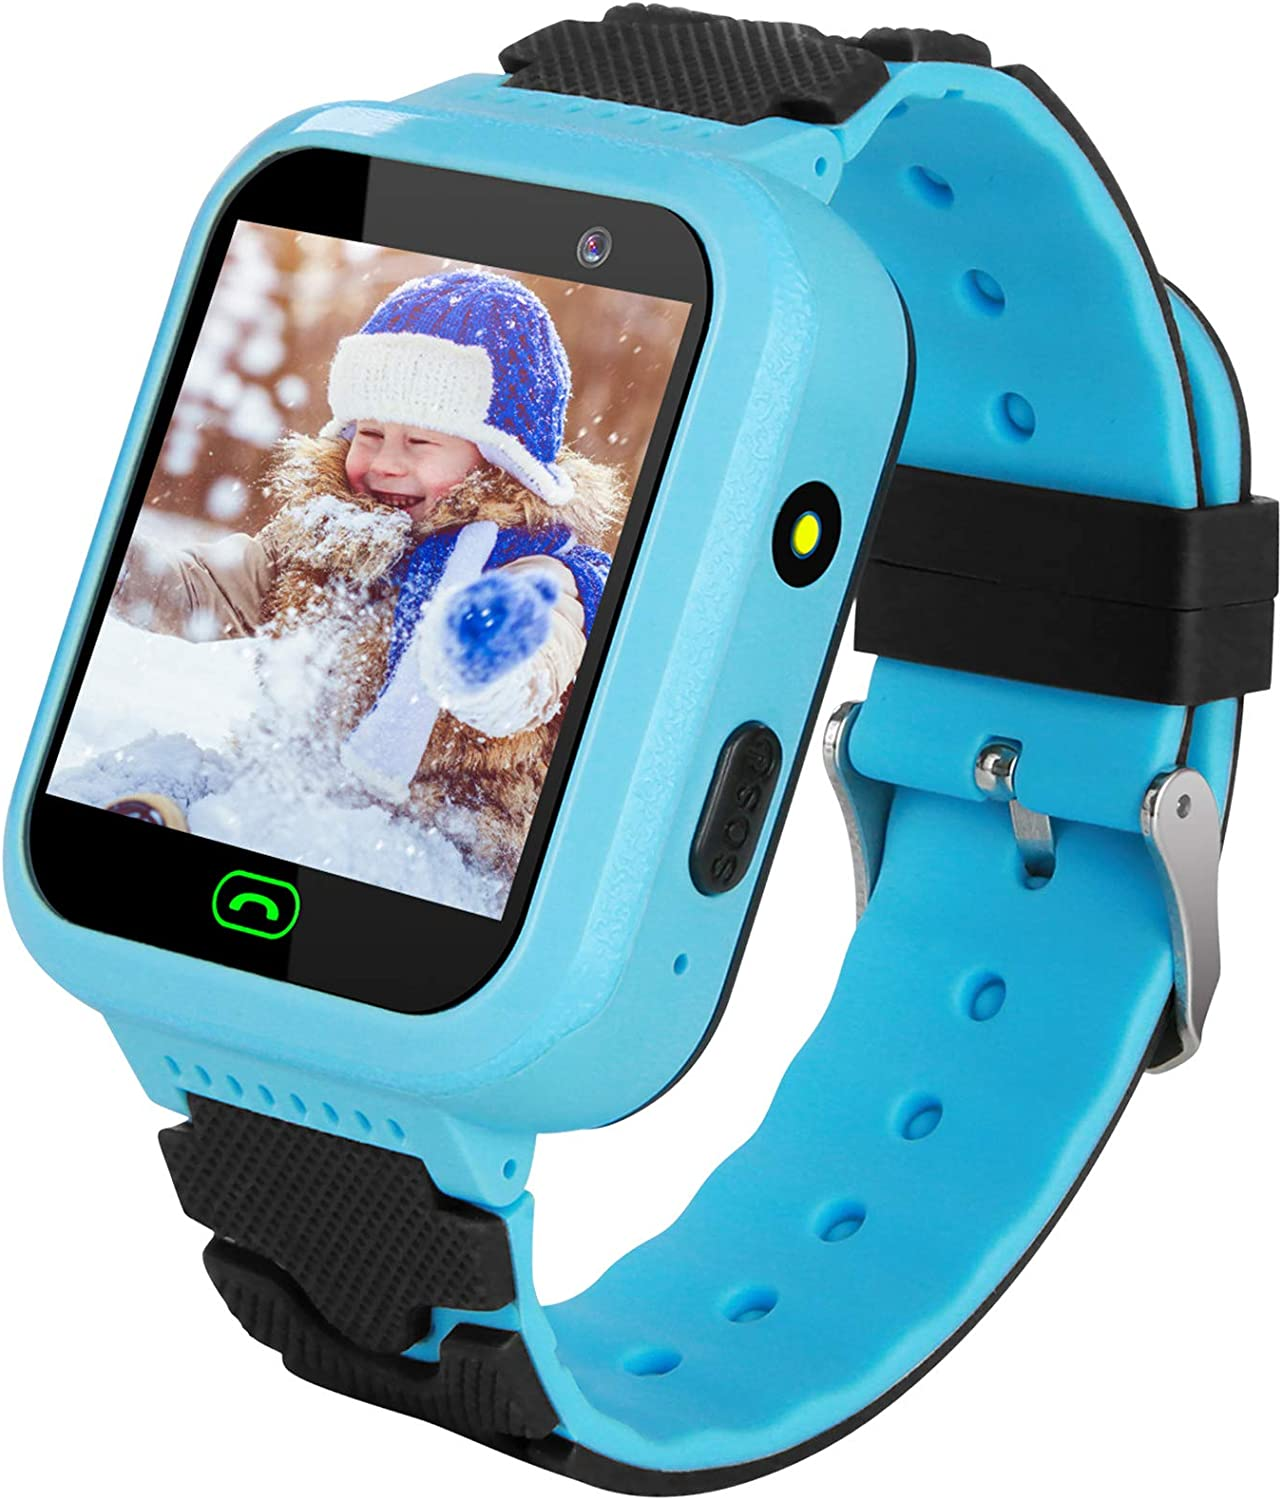 Kids Smartwatch with GPS Tracker, Touchscreen Smartwatch with SOS Anti-Lost Remote Camera Flashlight Learning Game Watch Wrist Smart Watch for Christmas Birthday Gifts for 4-12 Years Boys Girls (Blue)